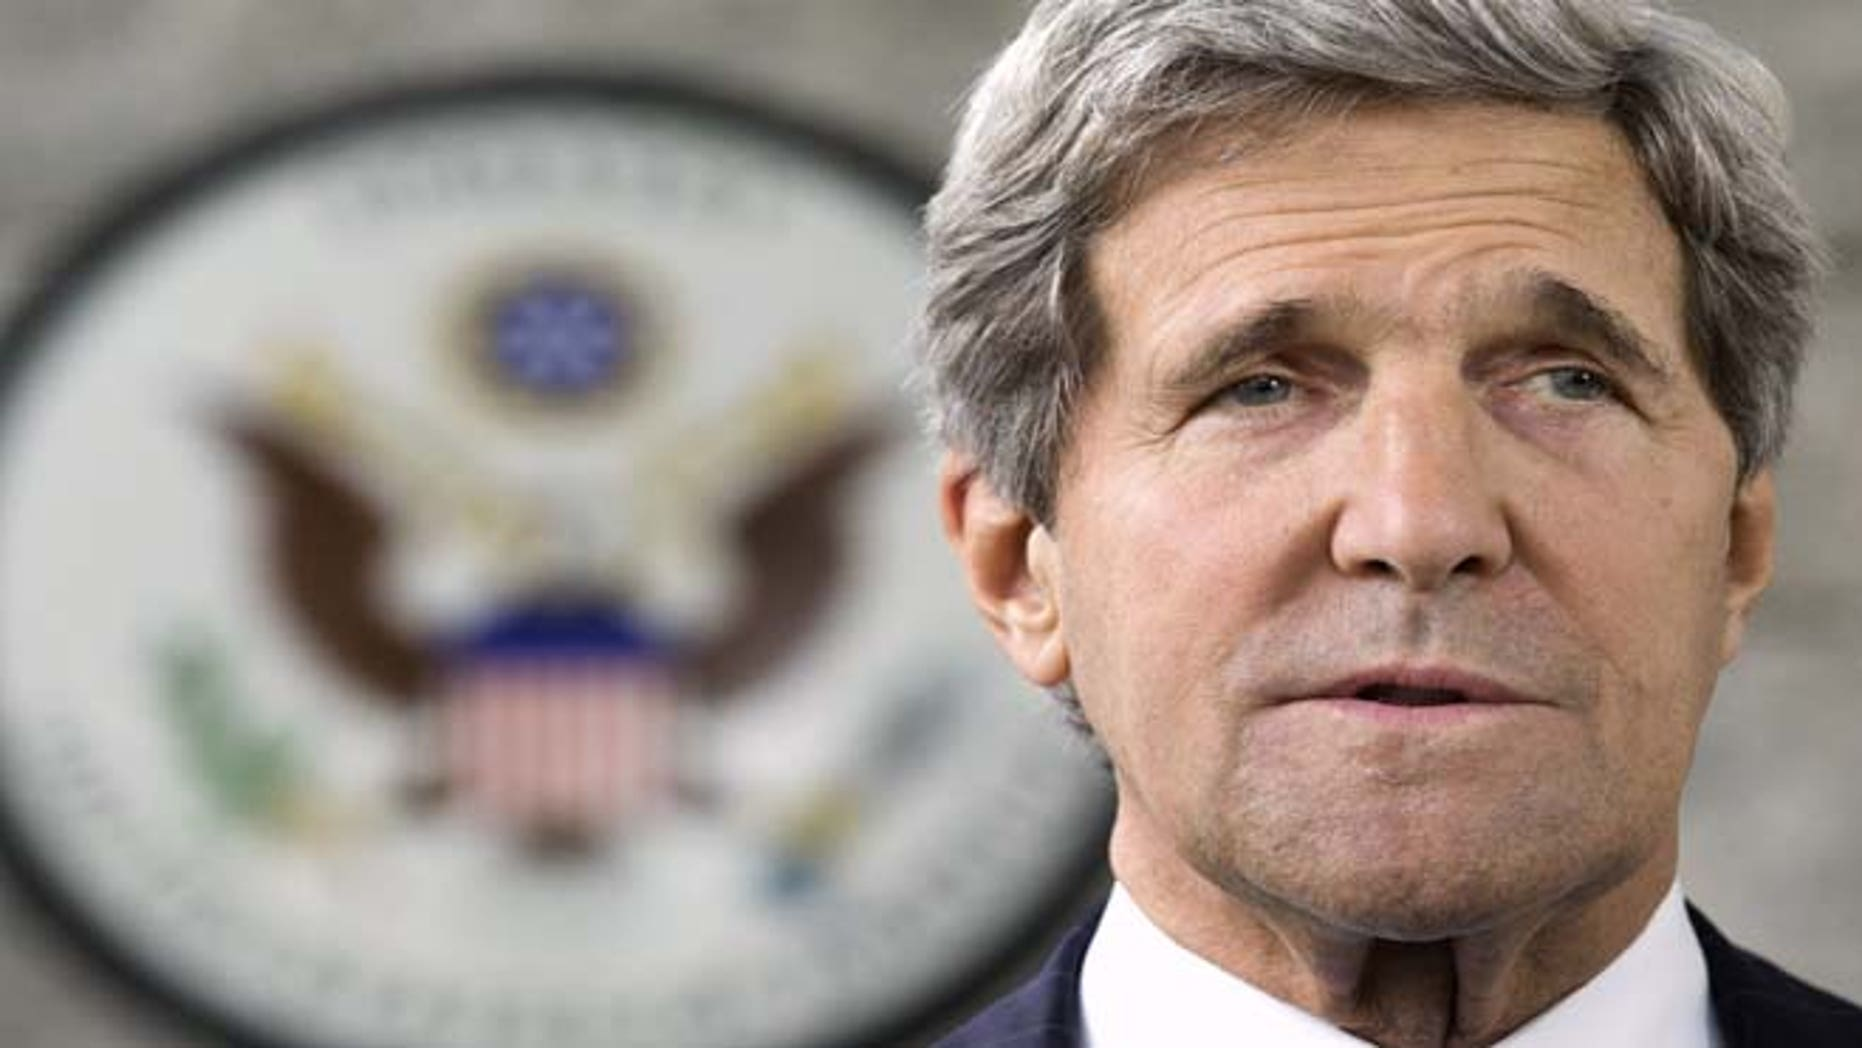 July 2, 2013: US Secretary of State John Kerry takes questions from the press in Brunei